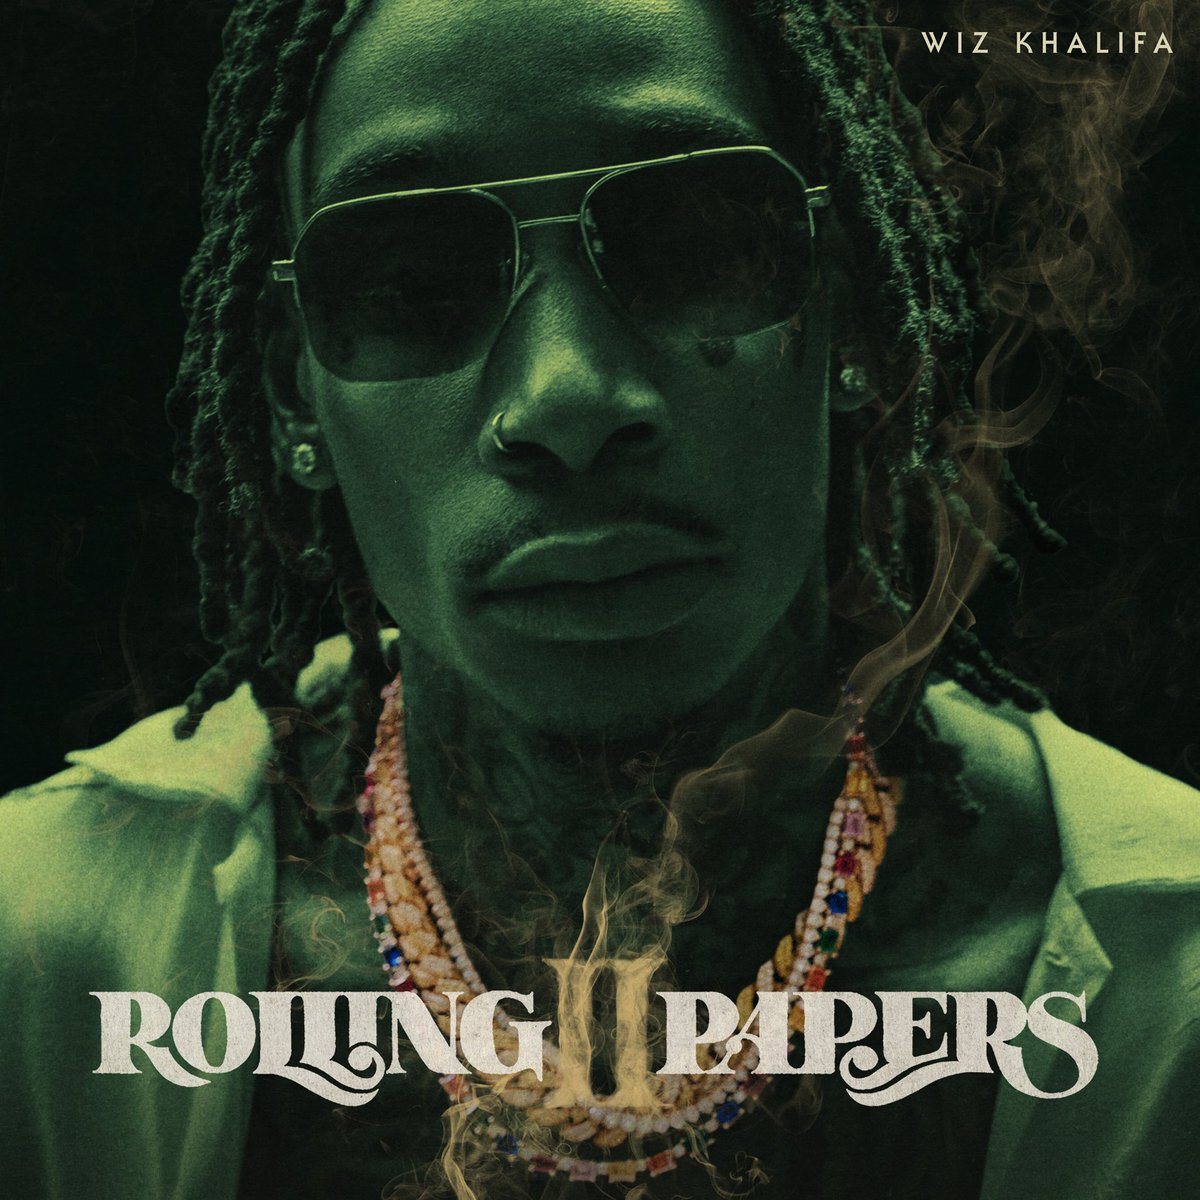 Roll UP & GO STREAM ROLLIN PAPERS 2 NOW!  #TGOD! @wizkhalifa